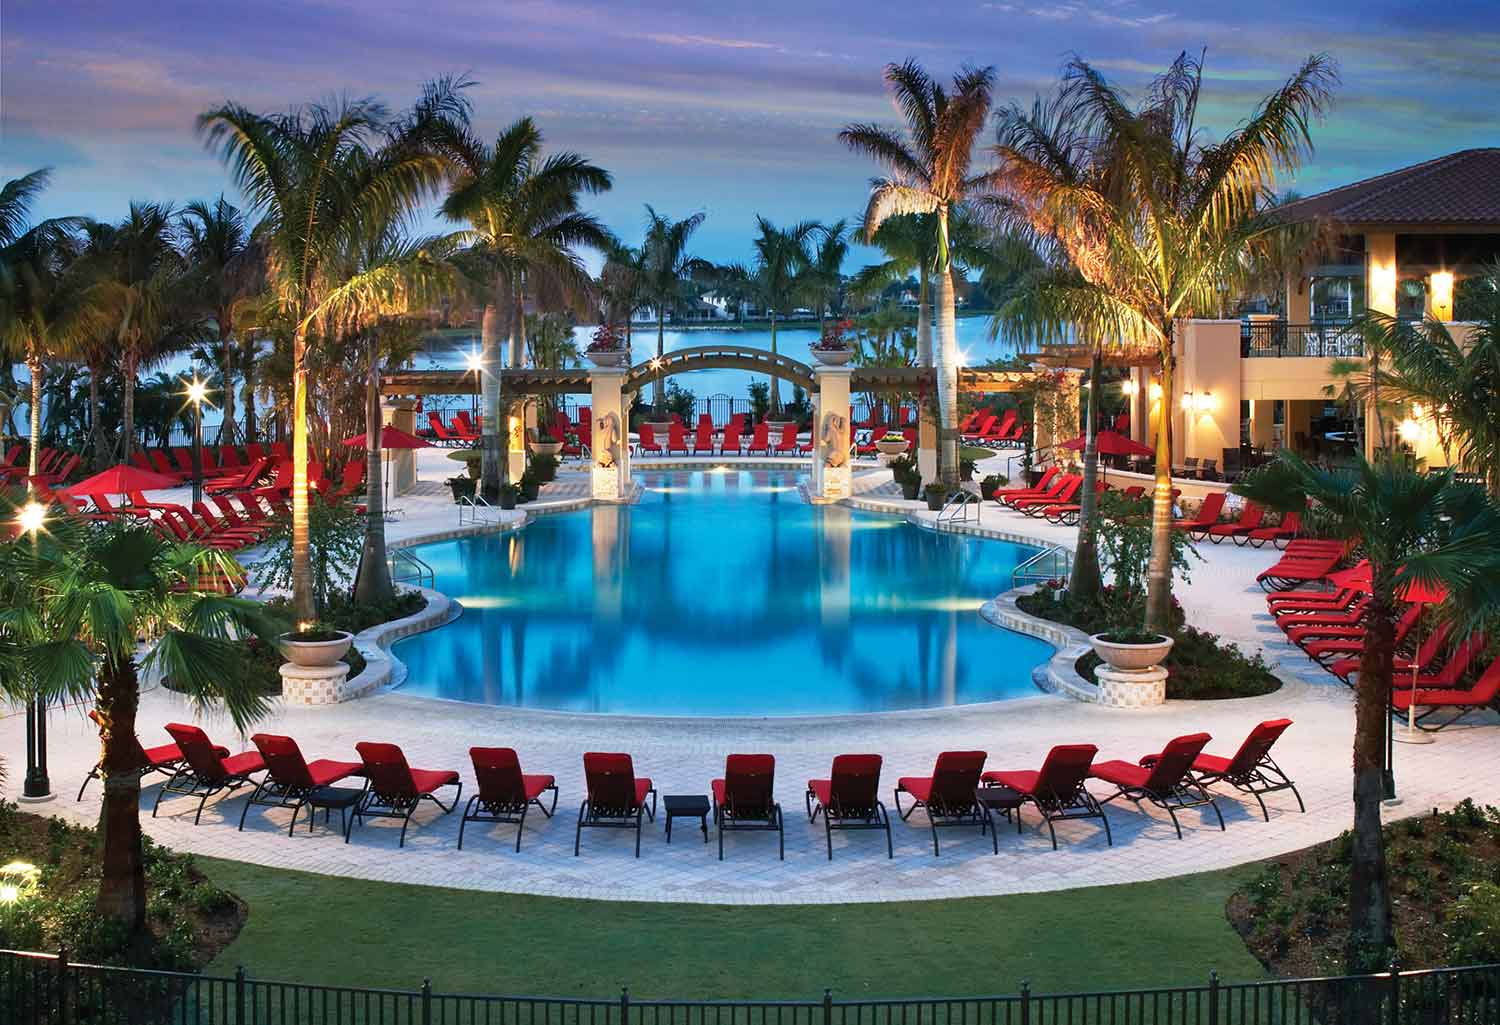 PGA National Resort & Spa, courtesy of Discover the Palm Beaches. [Image courtesy of Discover The Palm Beaches].